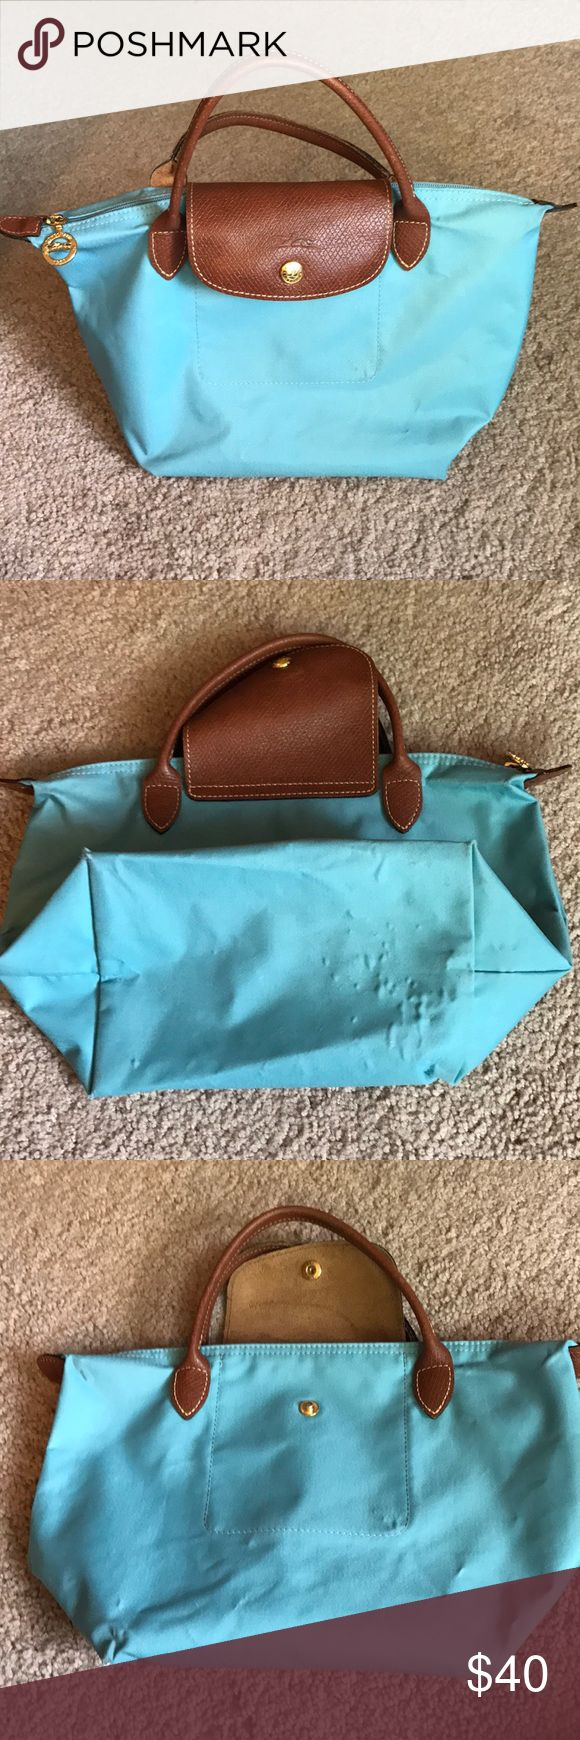 """Longchamp Le Pliage Small Great bag, showing signs of wear. Great sky blue color. Nylon with leather details, golden hardware, 3 1/2"""" handle drop. Size SMALL. Price reflects wear. Longchamp Bags"""